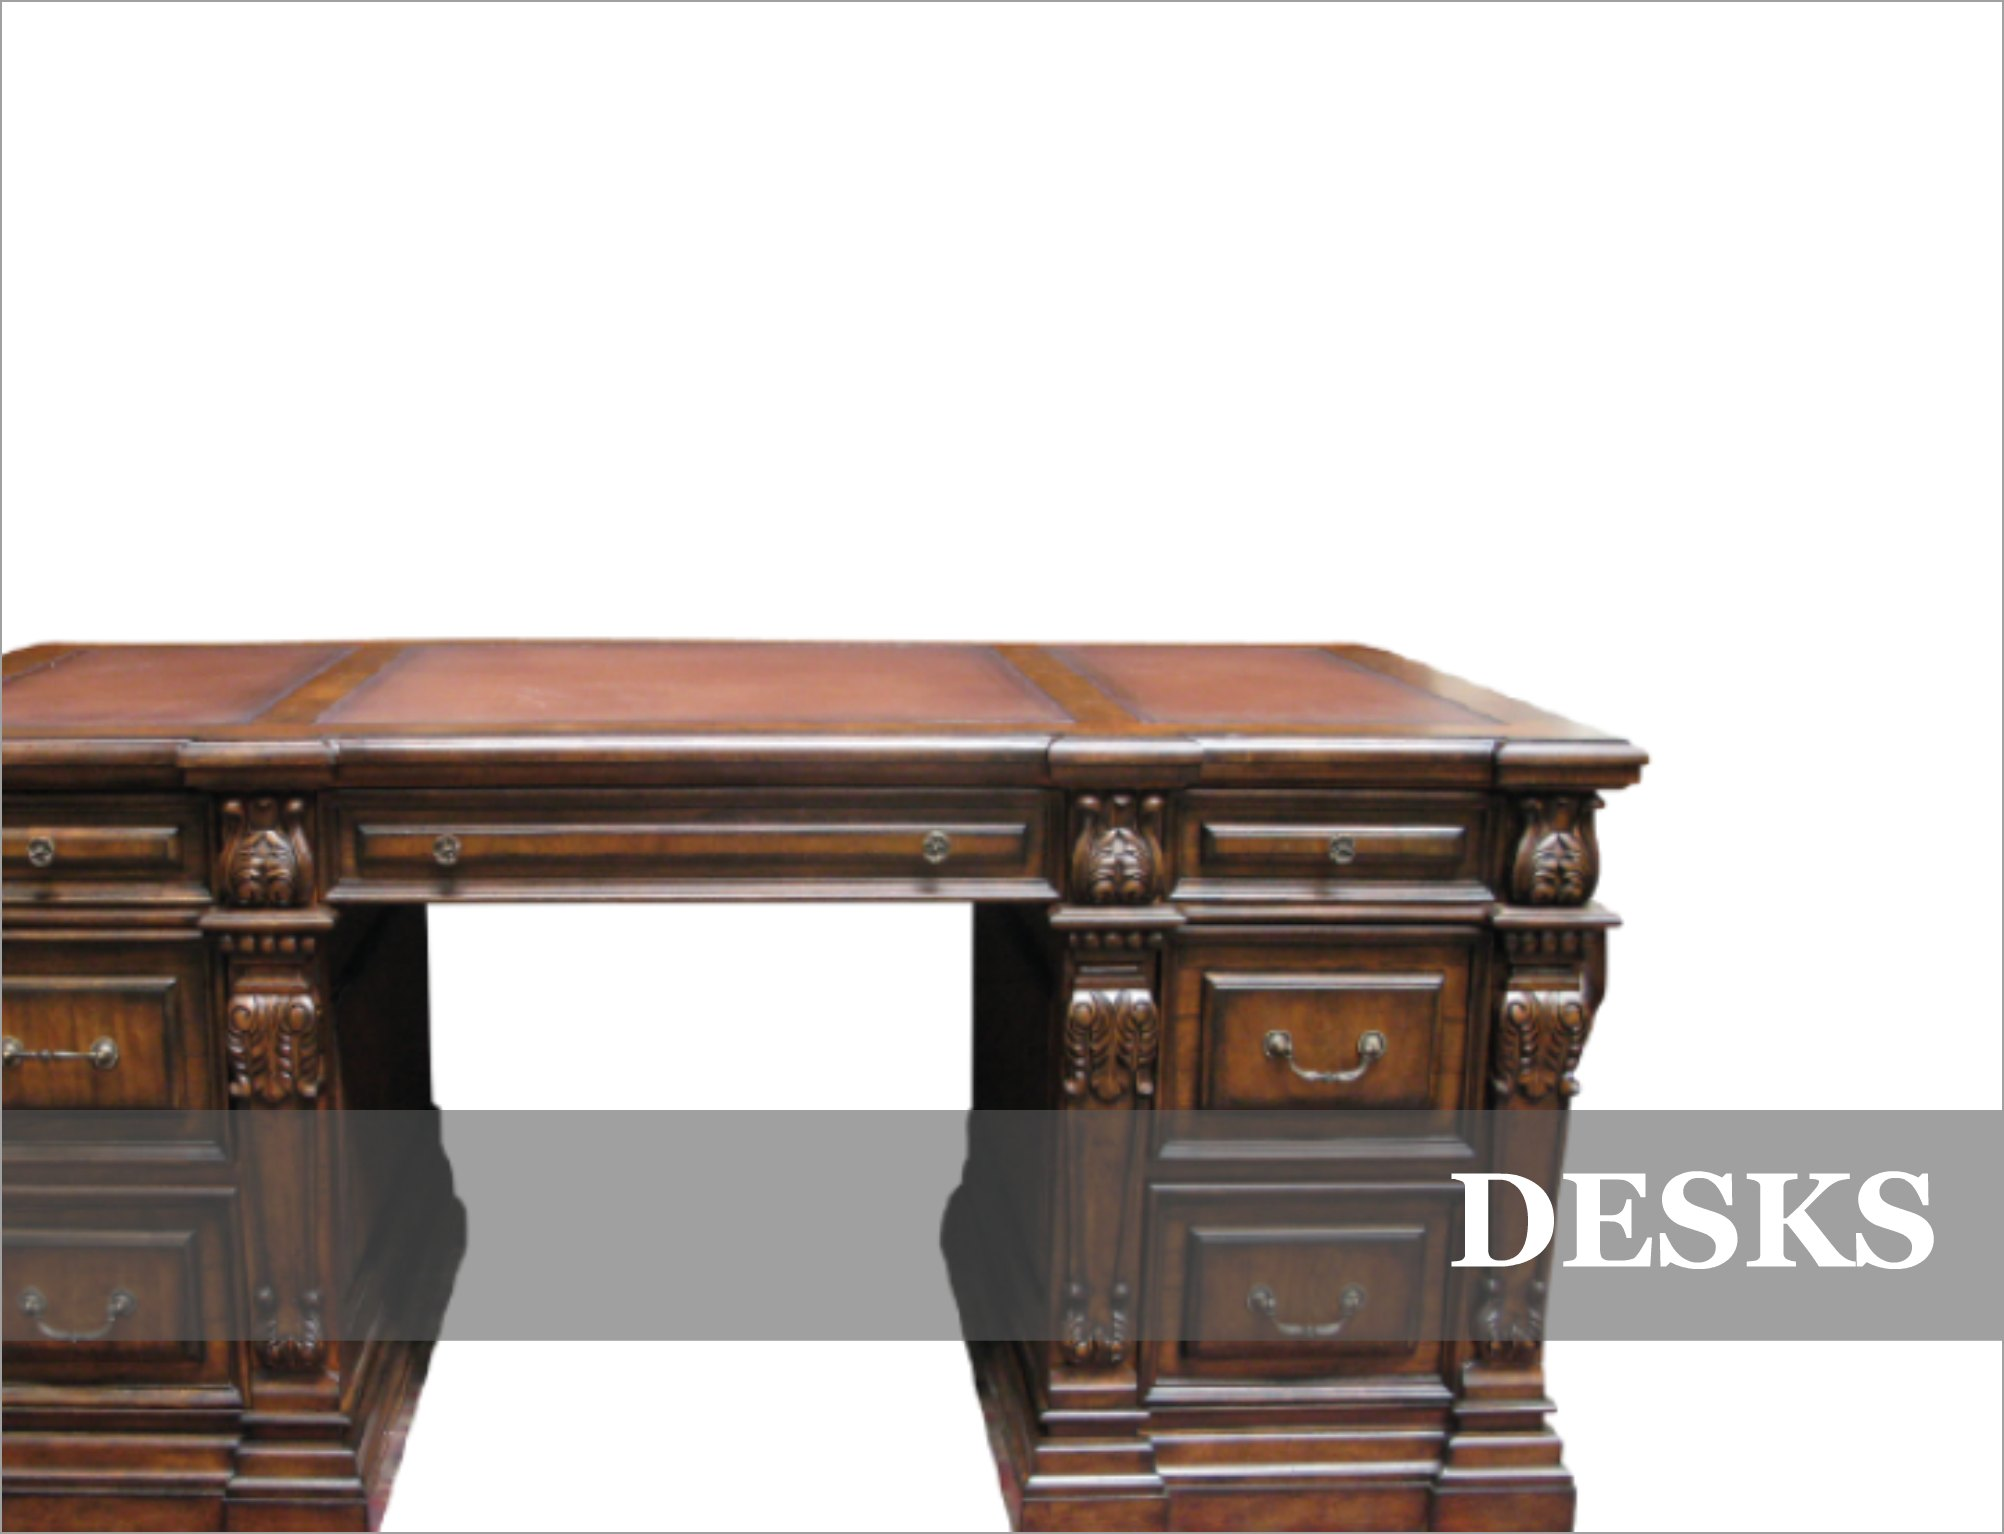 French Provincial Desks